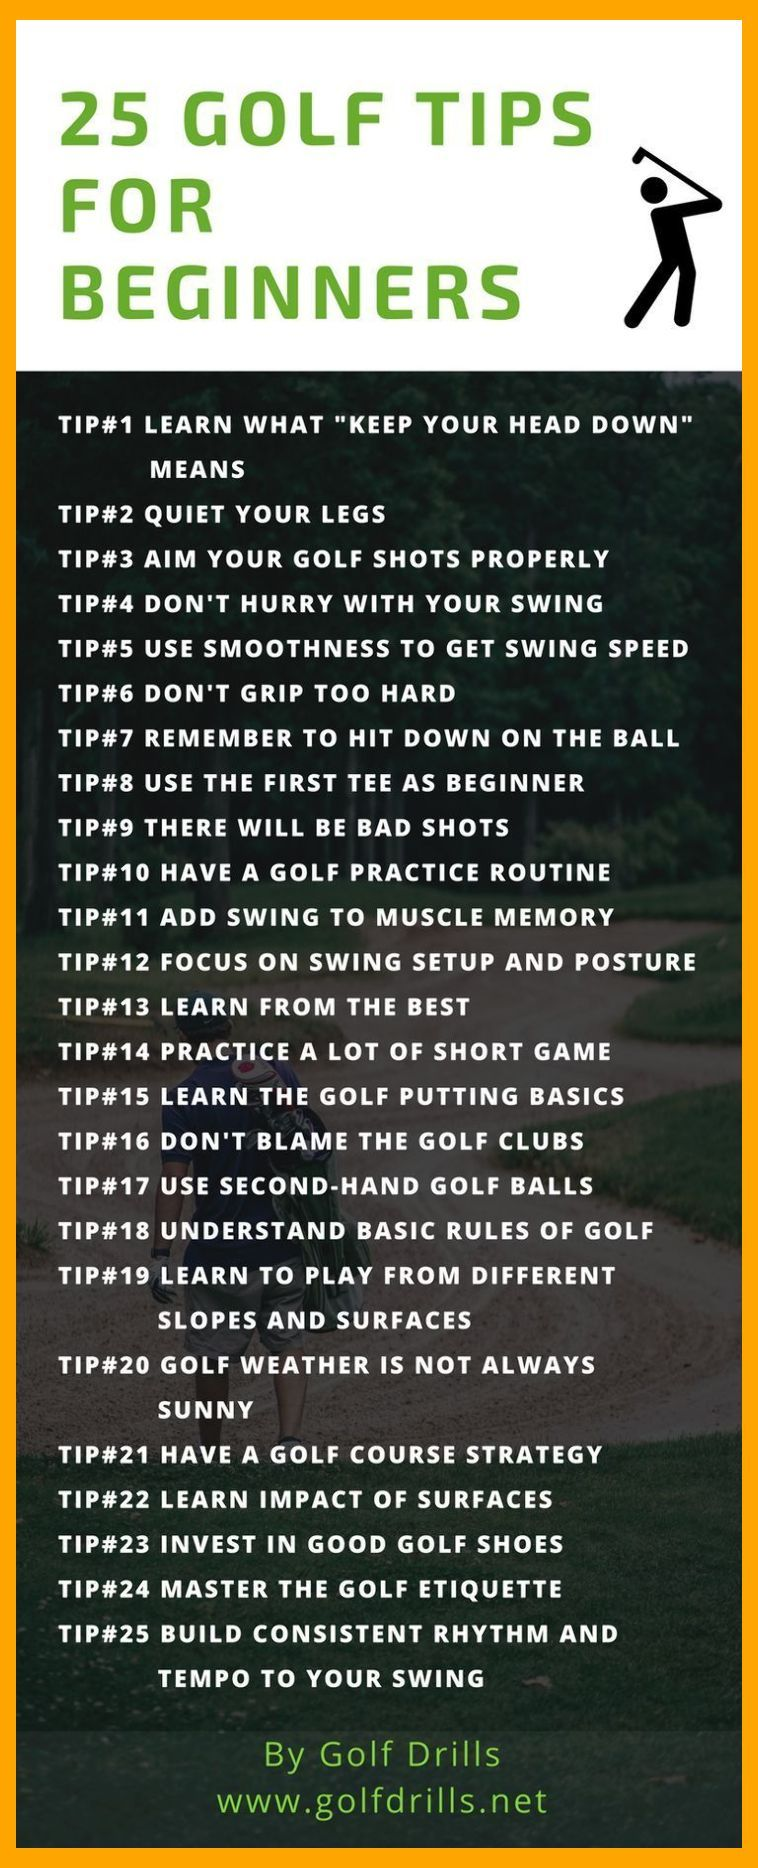 To know the best golf tips for beginners, check this